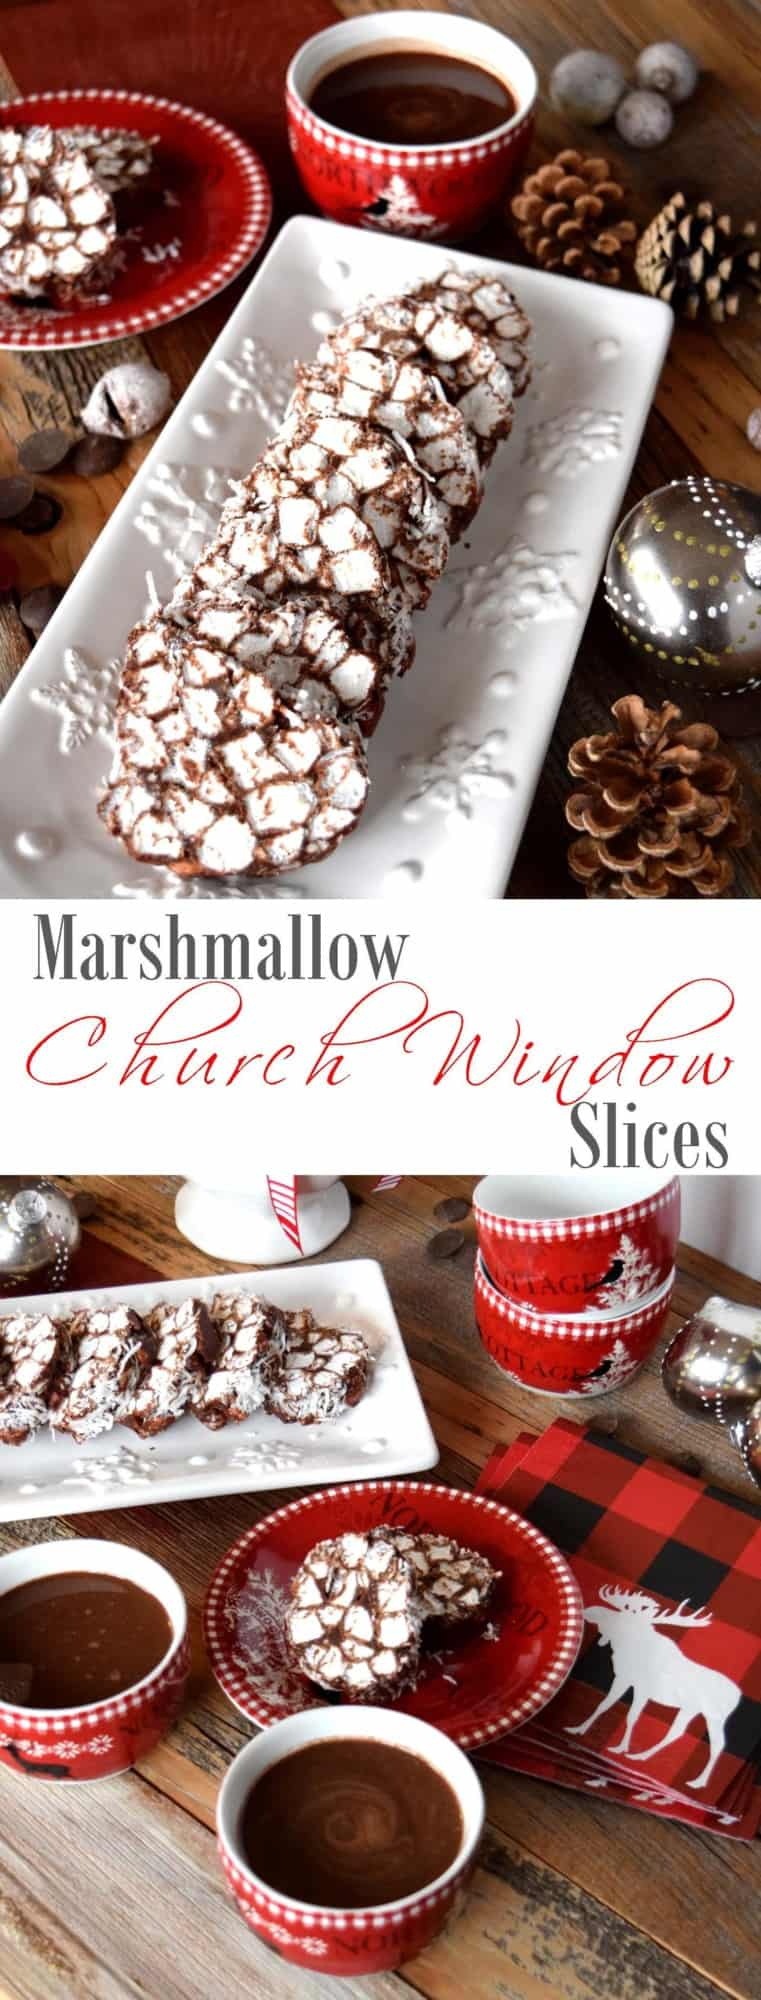 Marshmallow Church Window Slices